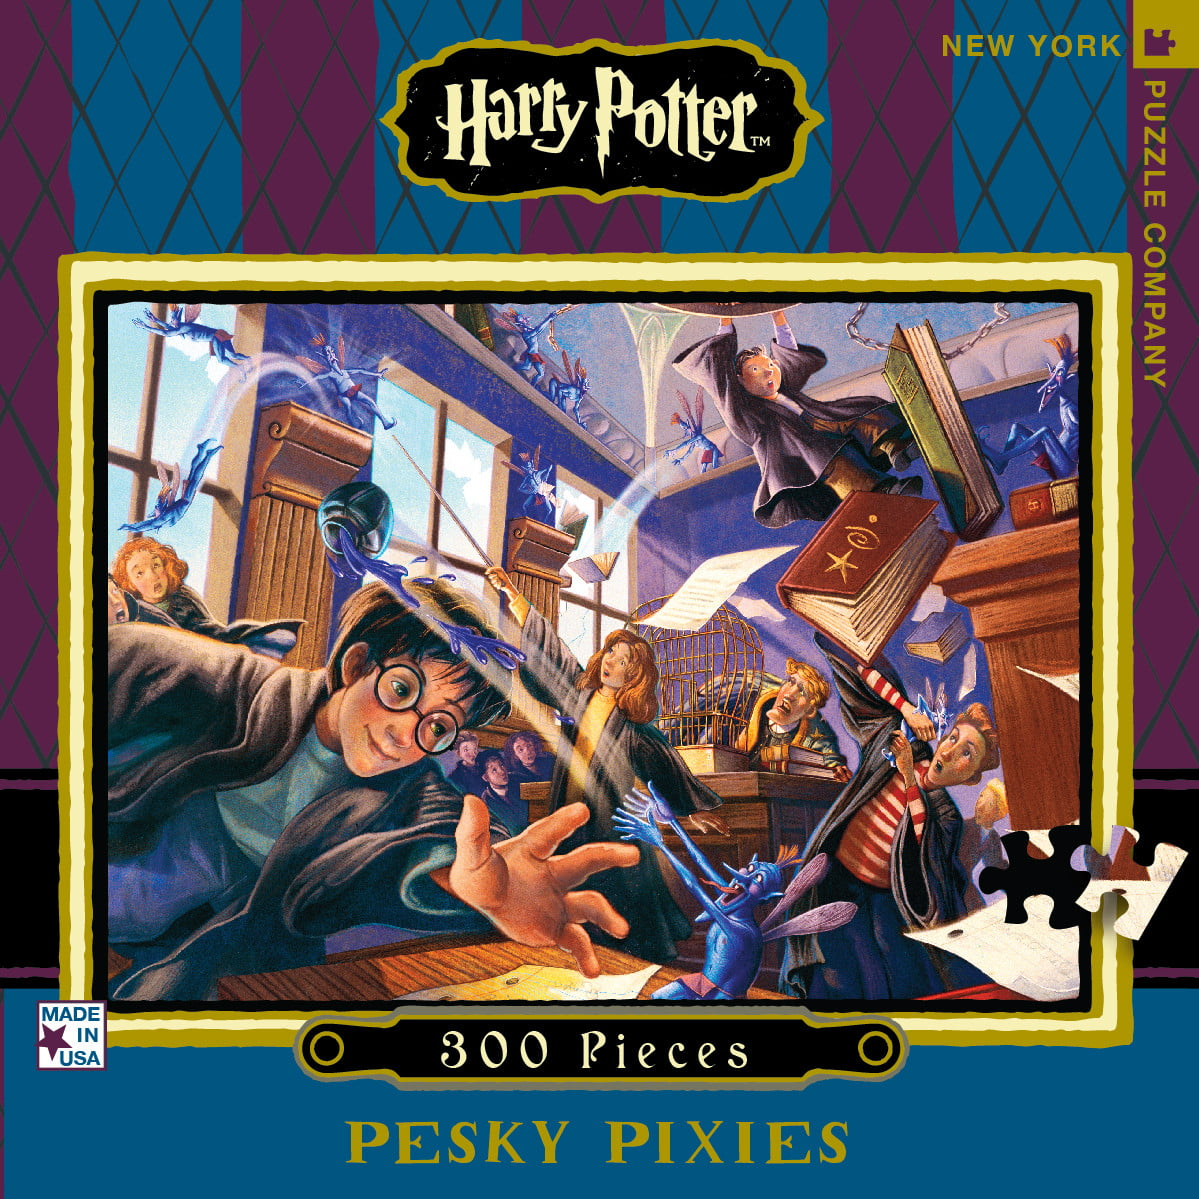 New York And Company Credit Card Payment >> HARRY POTTER PESKY PIXIES 300 PC JIGSAW PUZZLE - PUZZLE ...